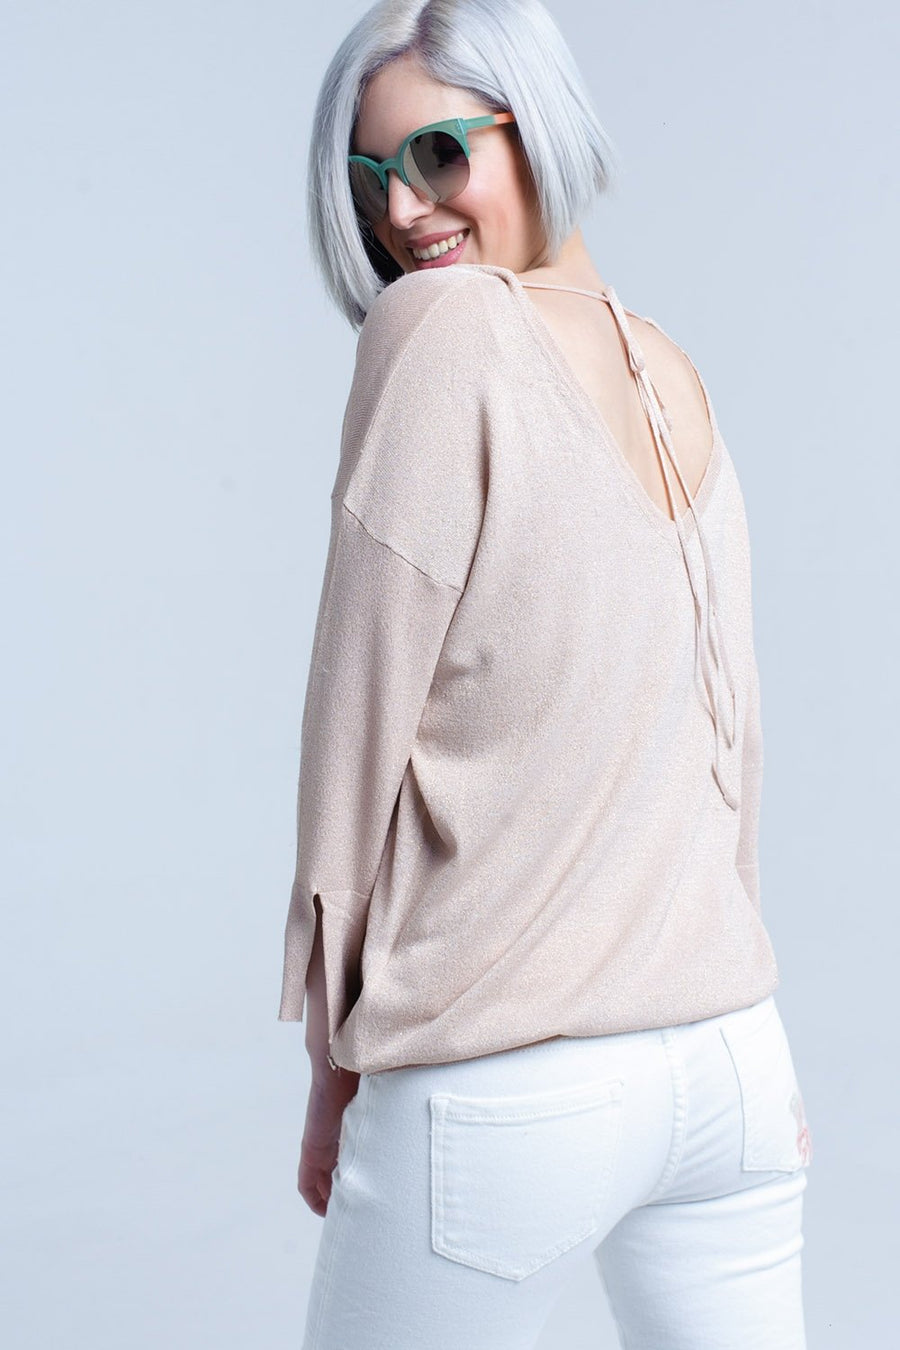 Pink knit sweater with gold lurex detail Women - Apparel - Sweaters Cardigans and Tops Tigerlily and Me